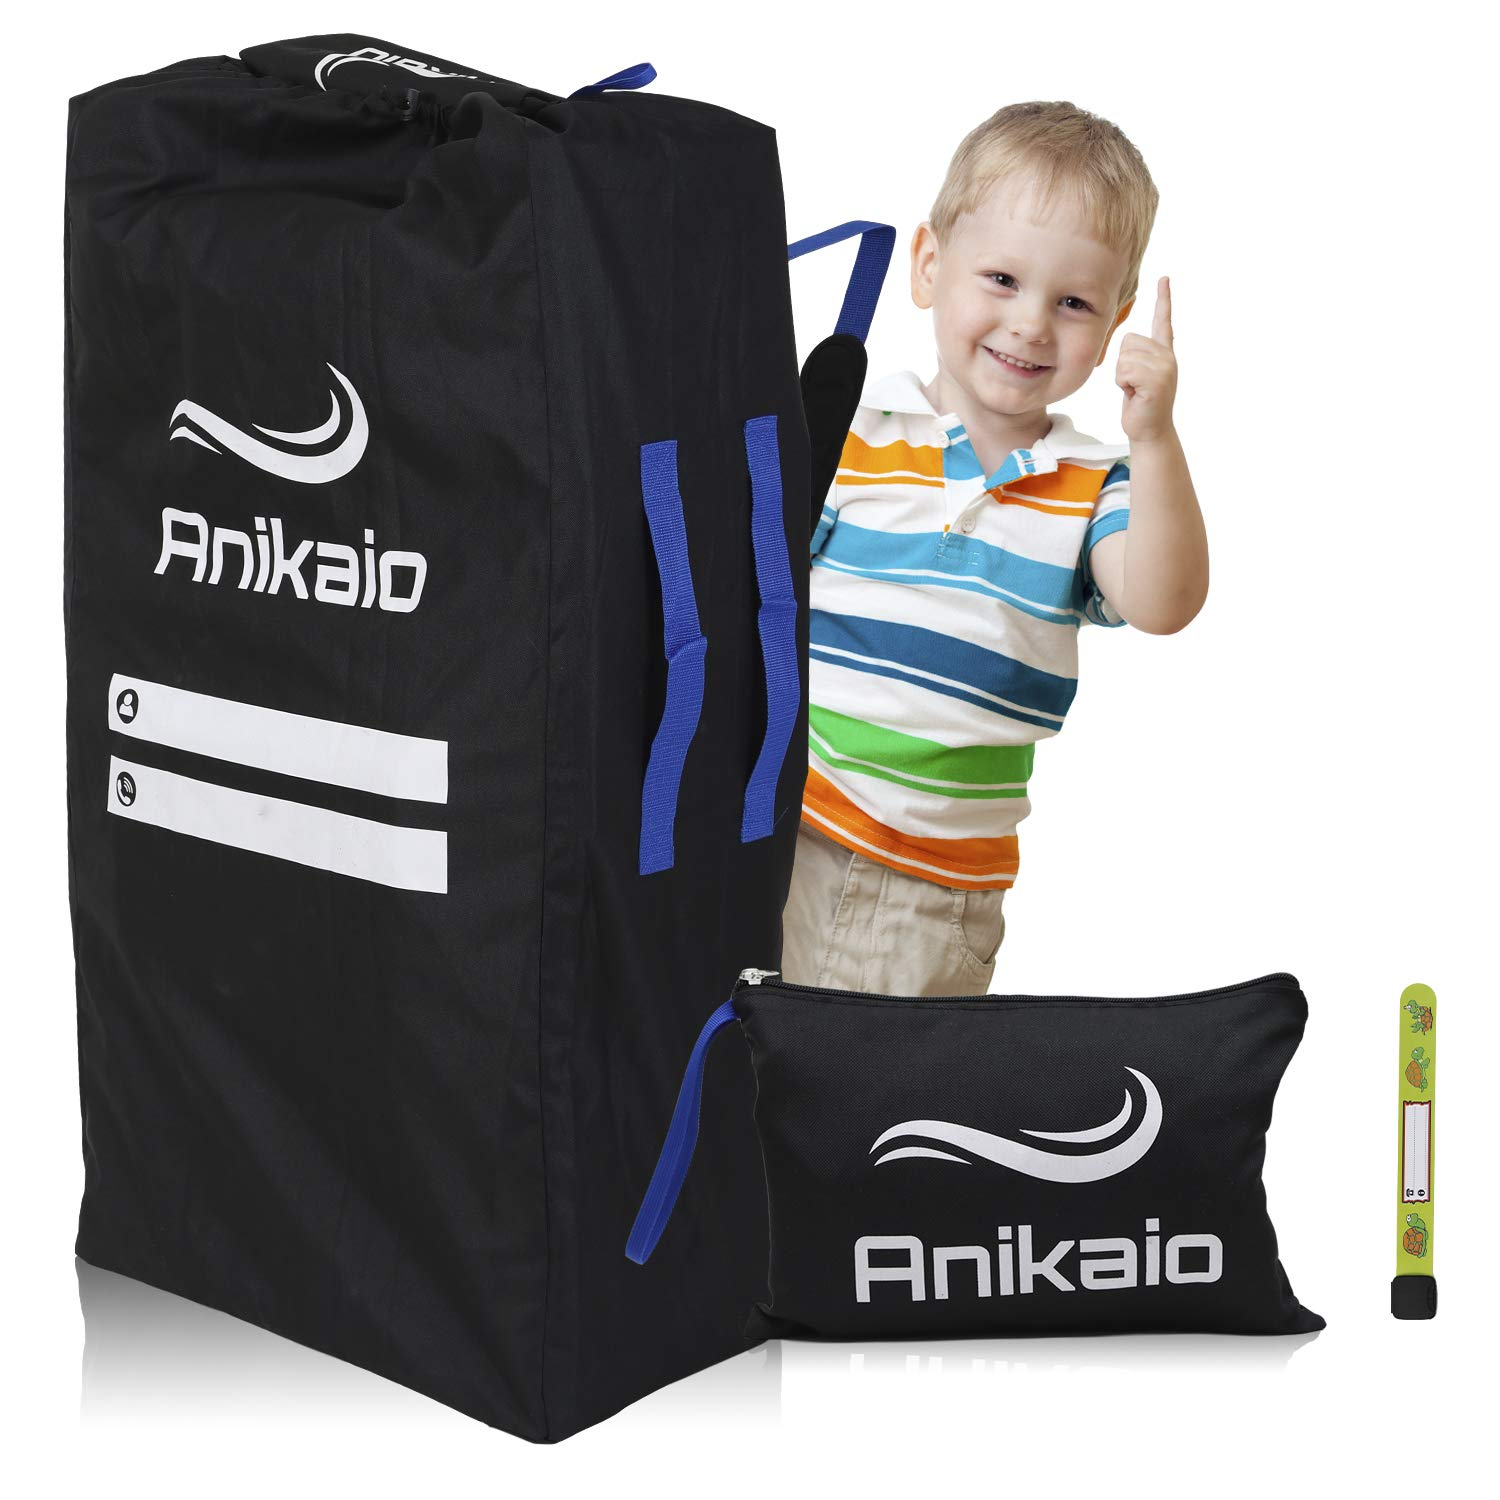 Anikaio Stroller Bag for Airplane Gate Check .Double Stroller Travel Bag to Cover and Protect Your Baby Umbrella Stroller by Anikaio bags